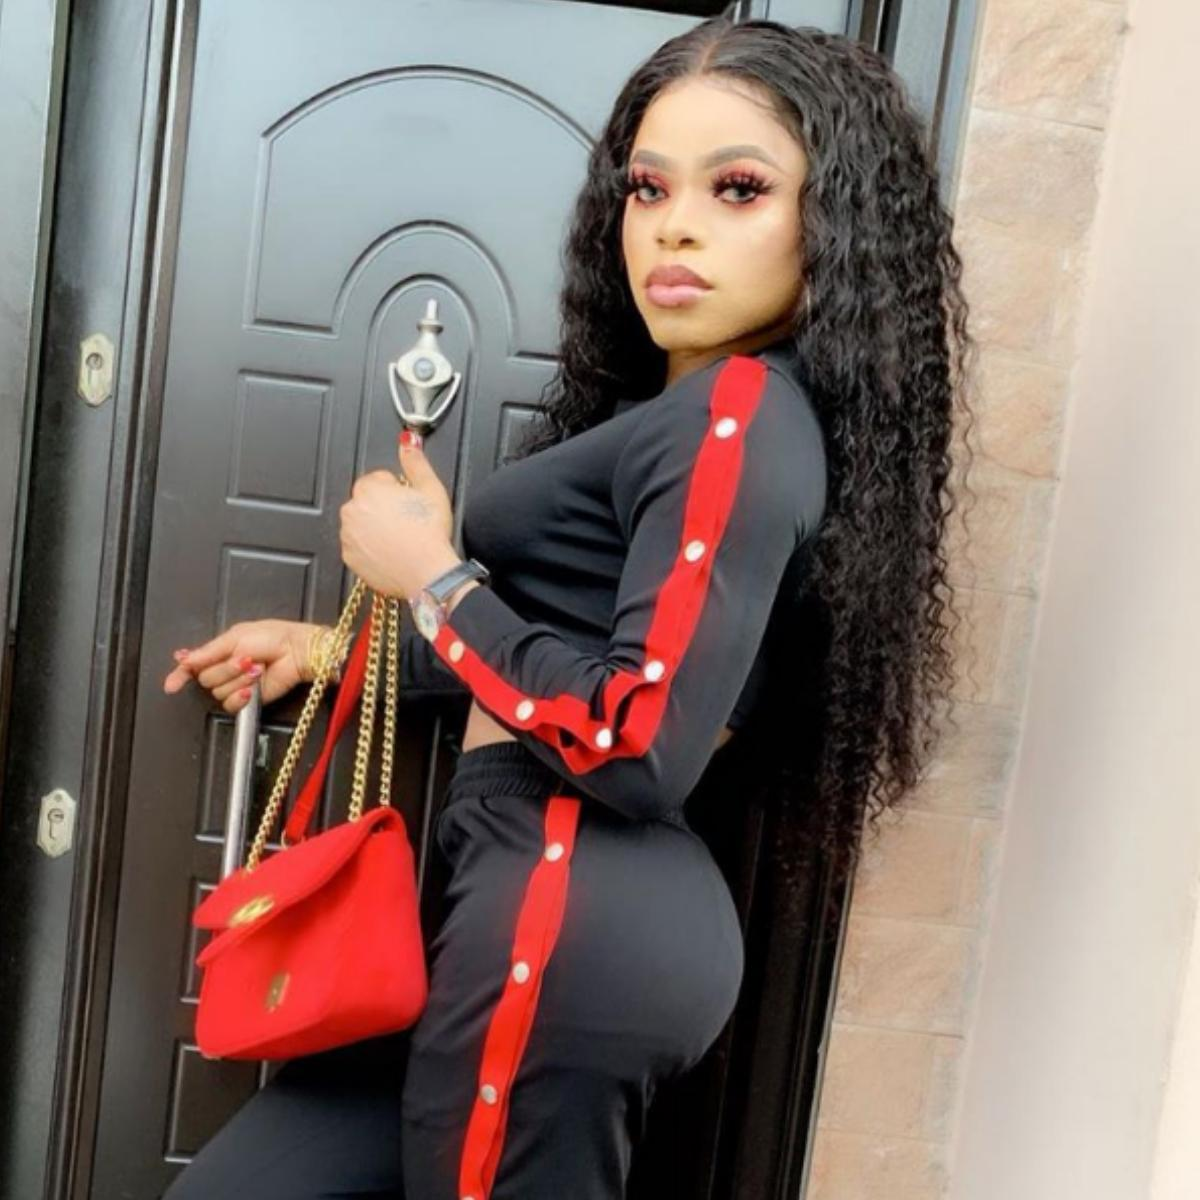 Bobrisky Shows Off His Three Car Keys